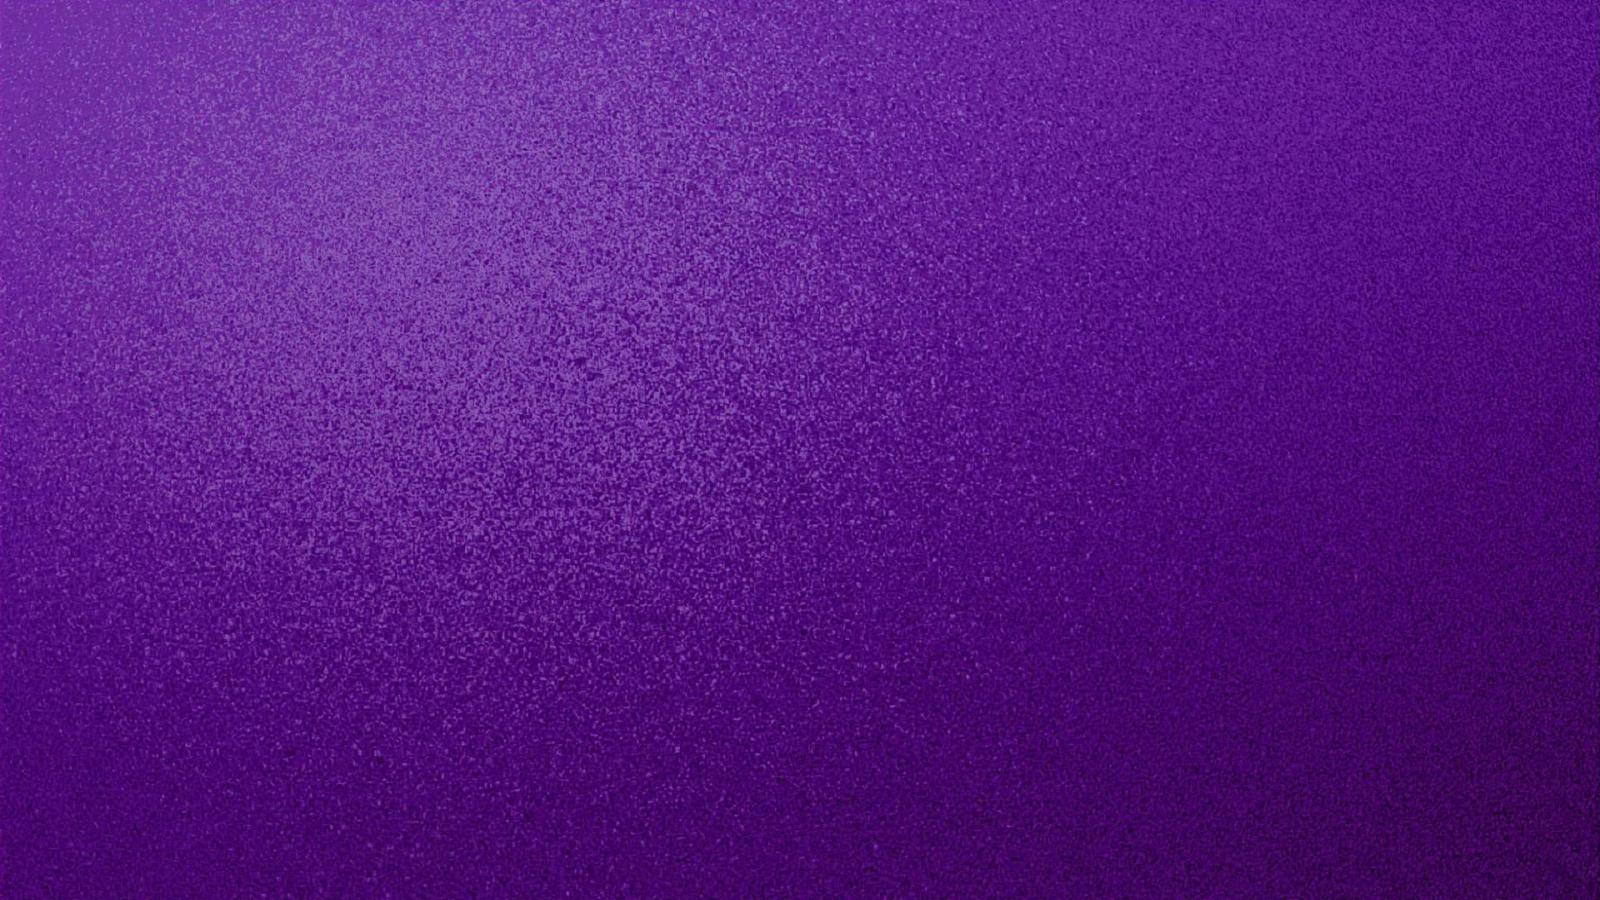 Purple background wallpaper 22914 1600x900 px for Purple wallpaper for walls